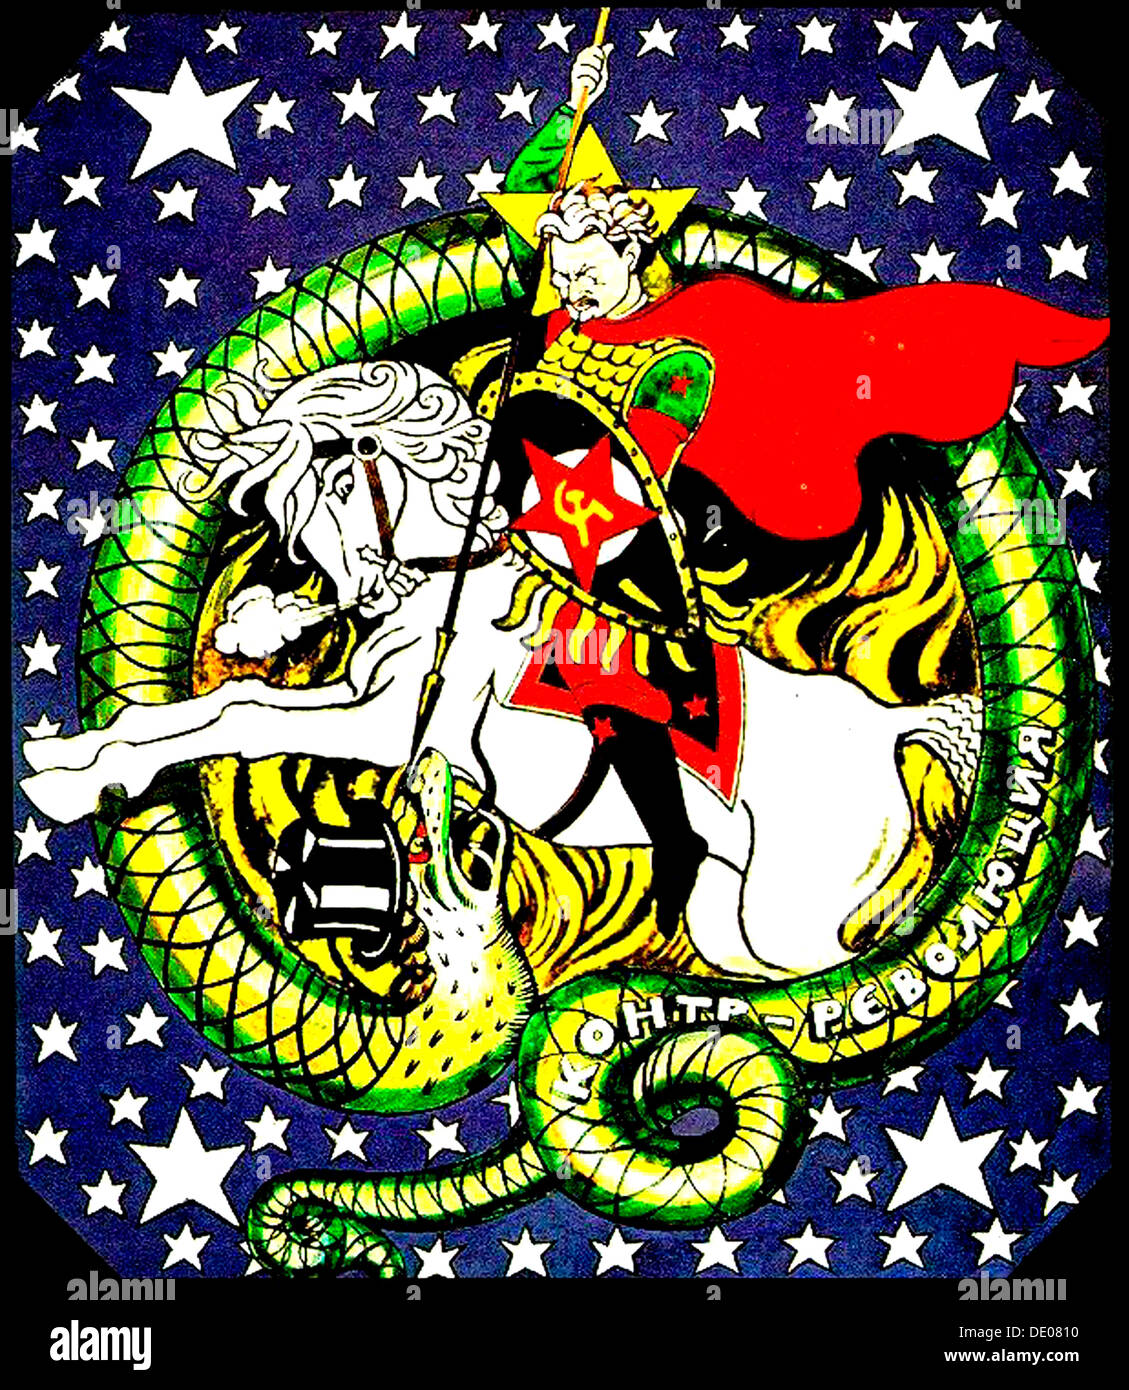 Trotsky slaying the counter-revolutionary dragon (poster), 1918.  Artist: Anon - Stock Image